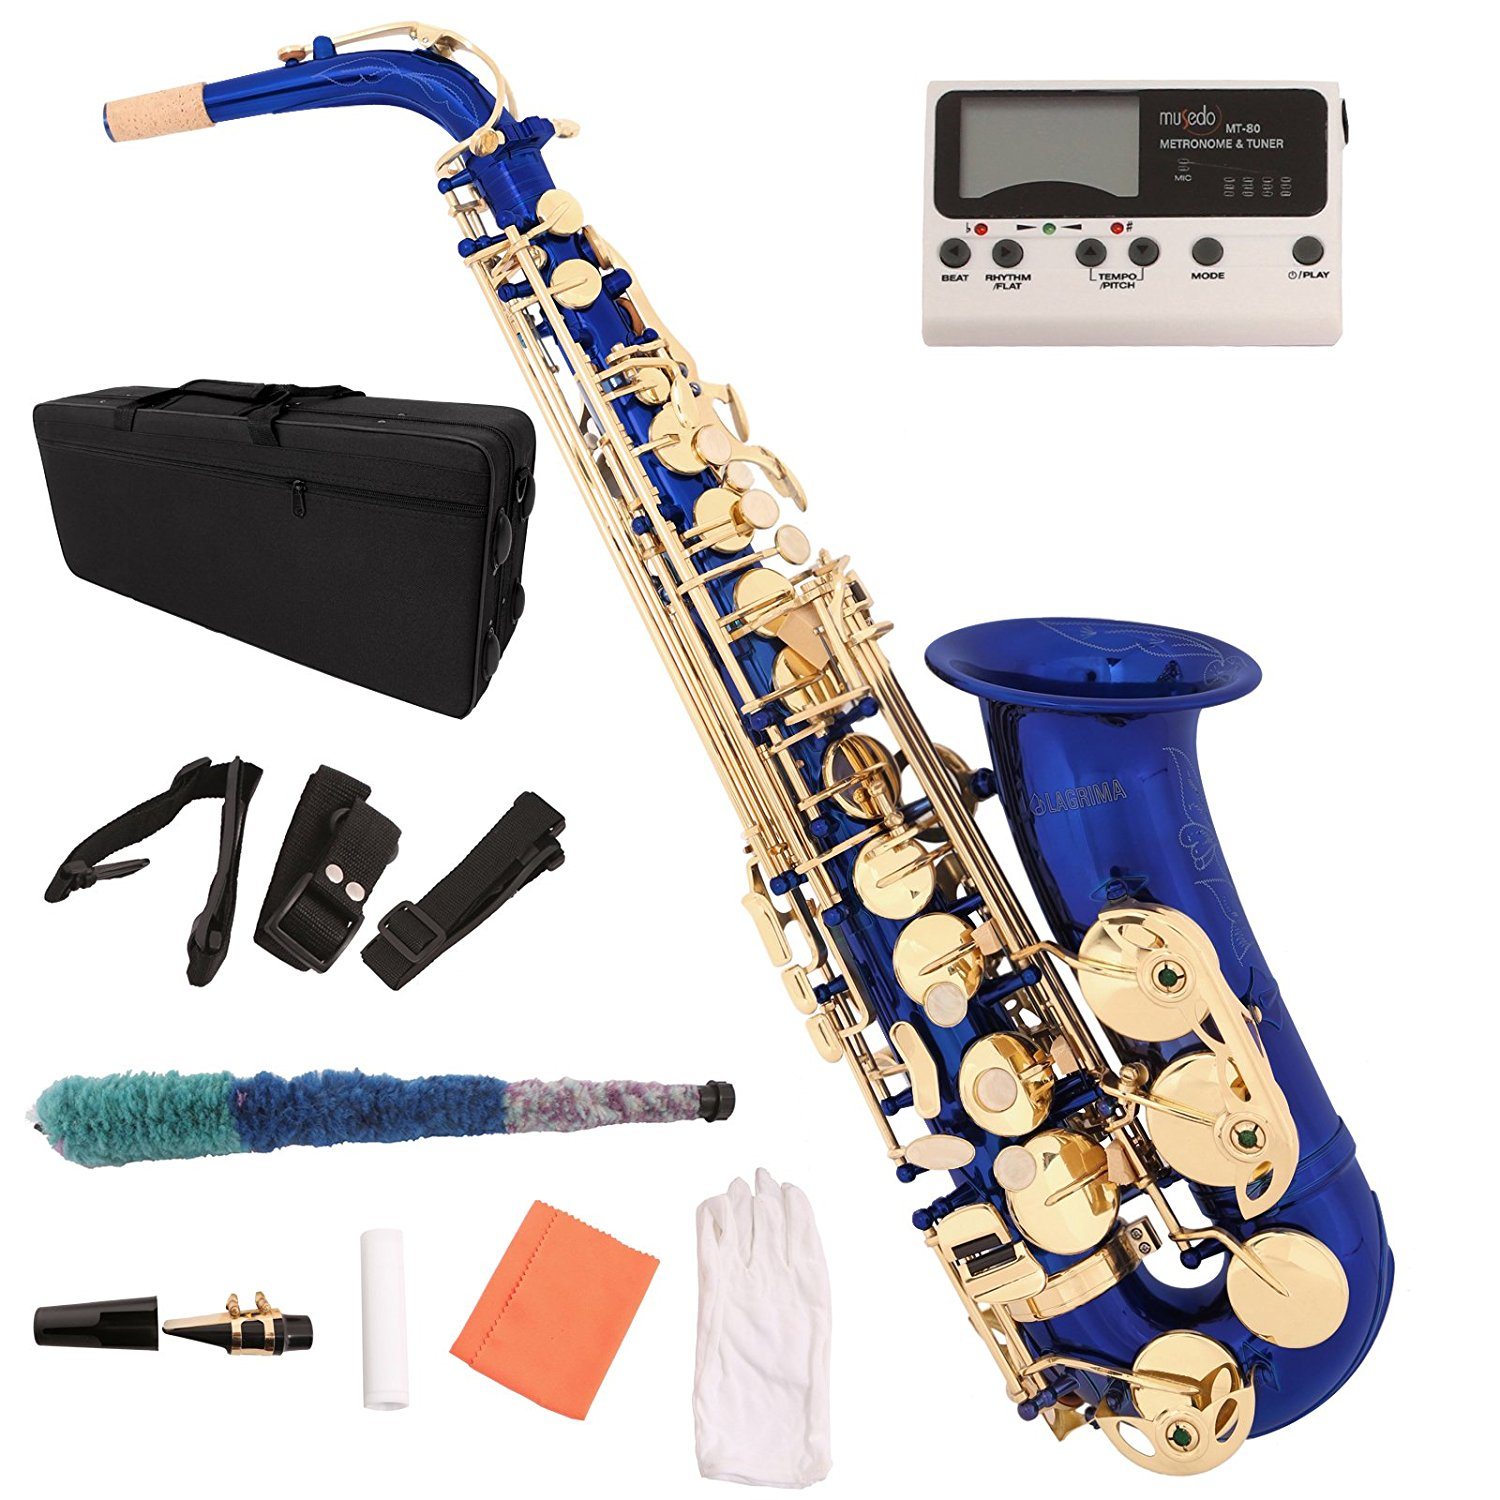 Blue Lacquer Brass Eb 2 Tone Alto Saxophone Sax w Tuner Case Carekit Accessories by Uenjoy